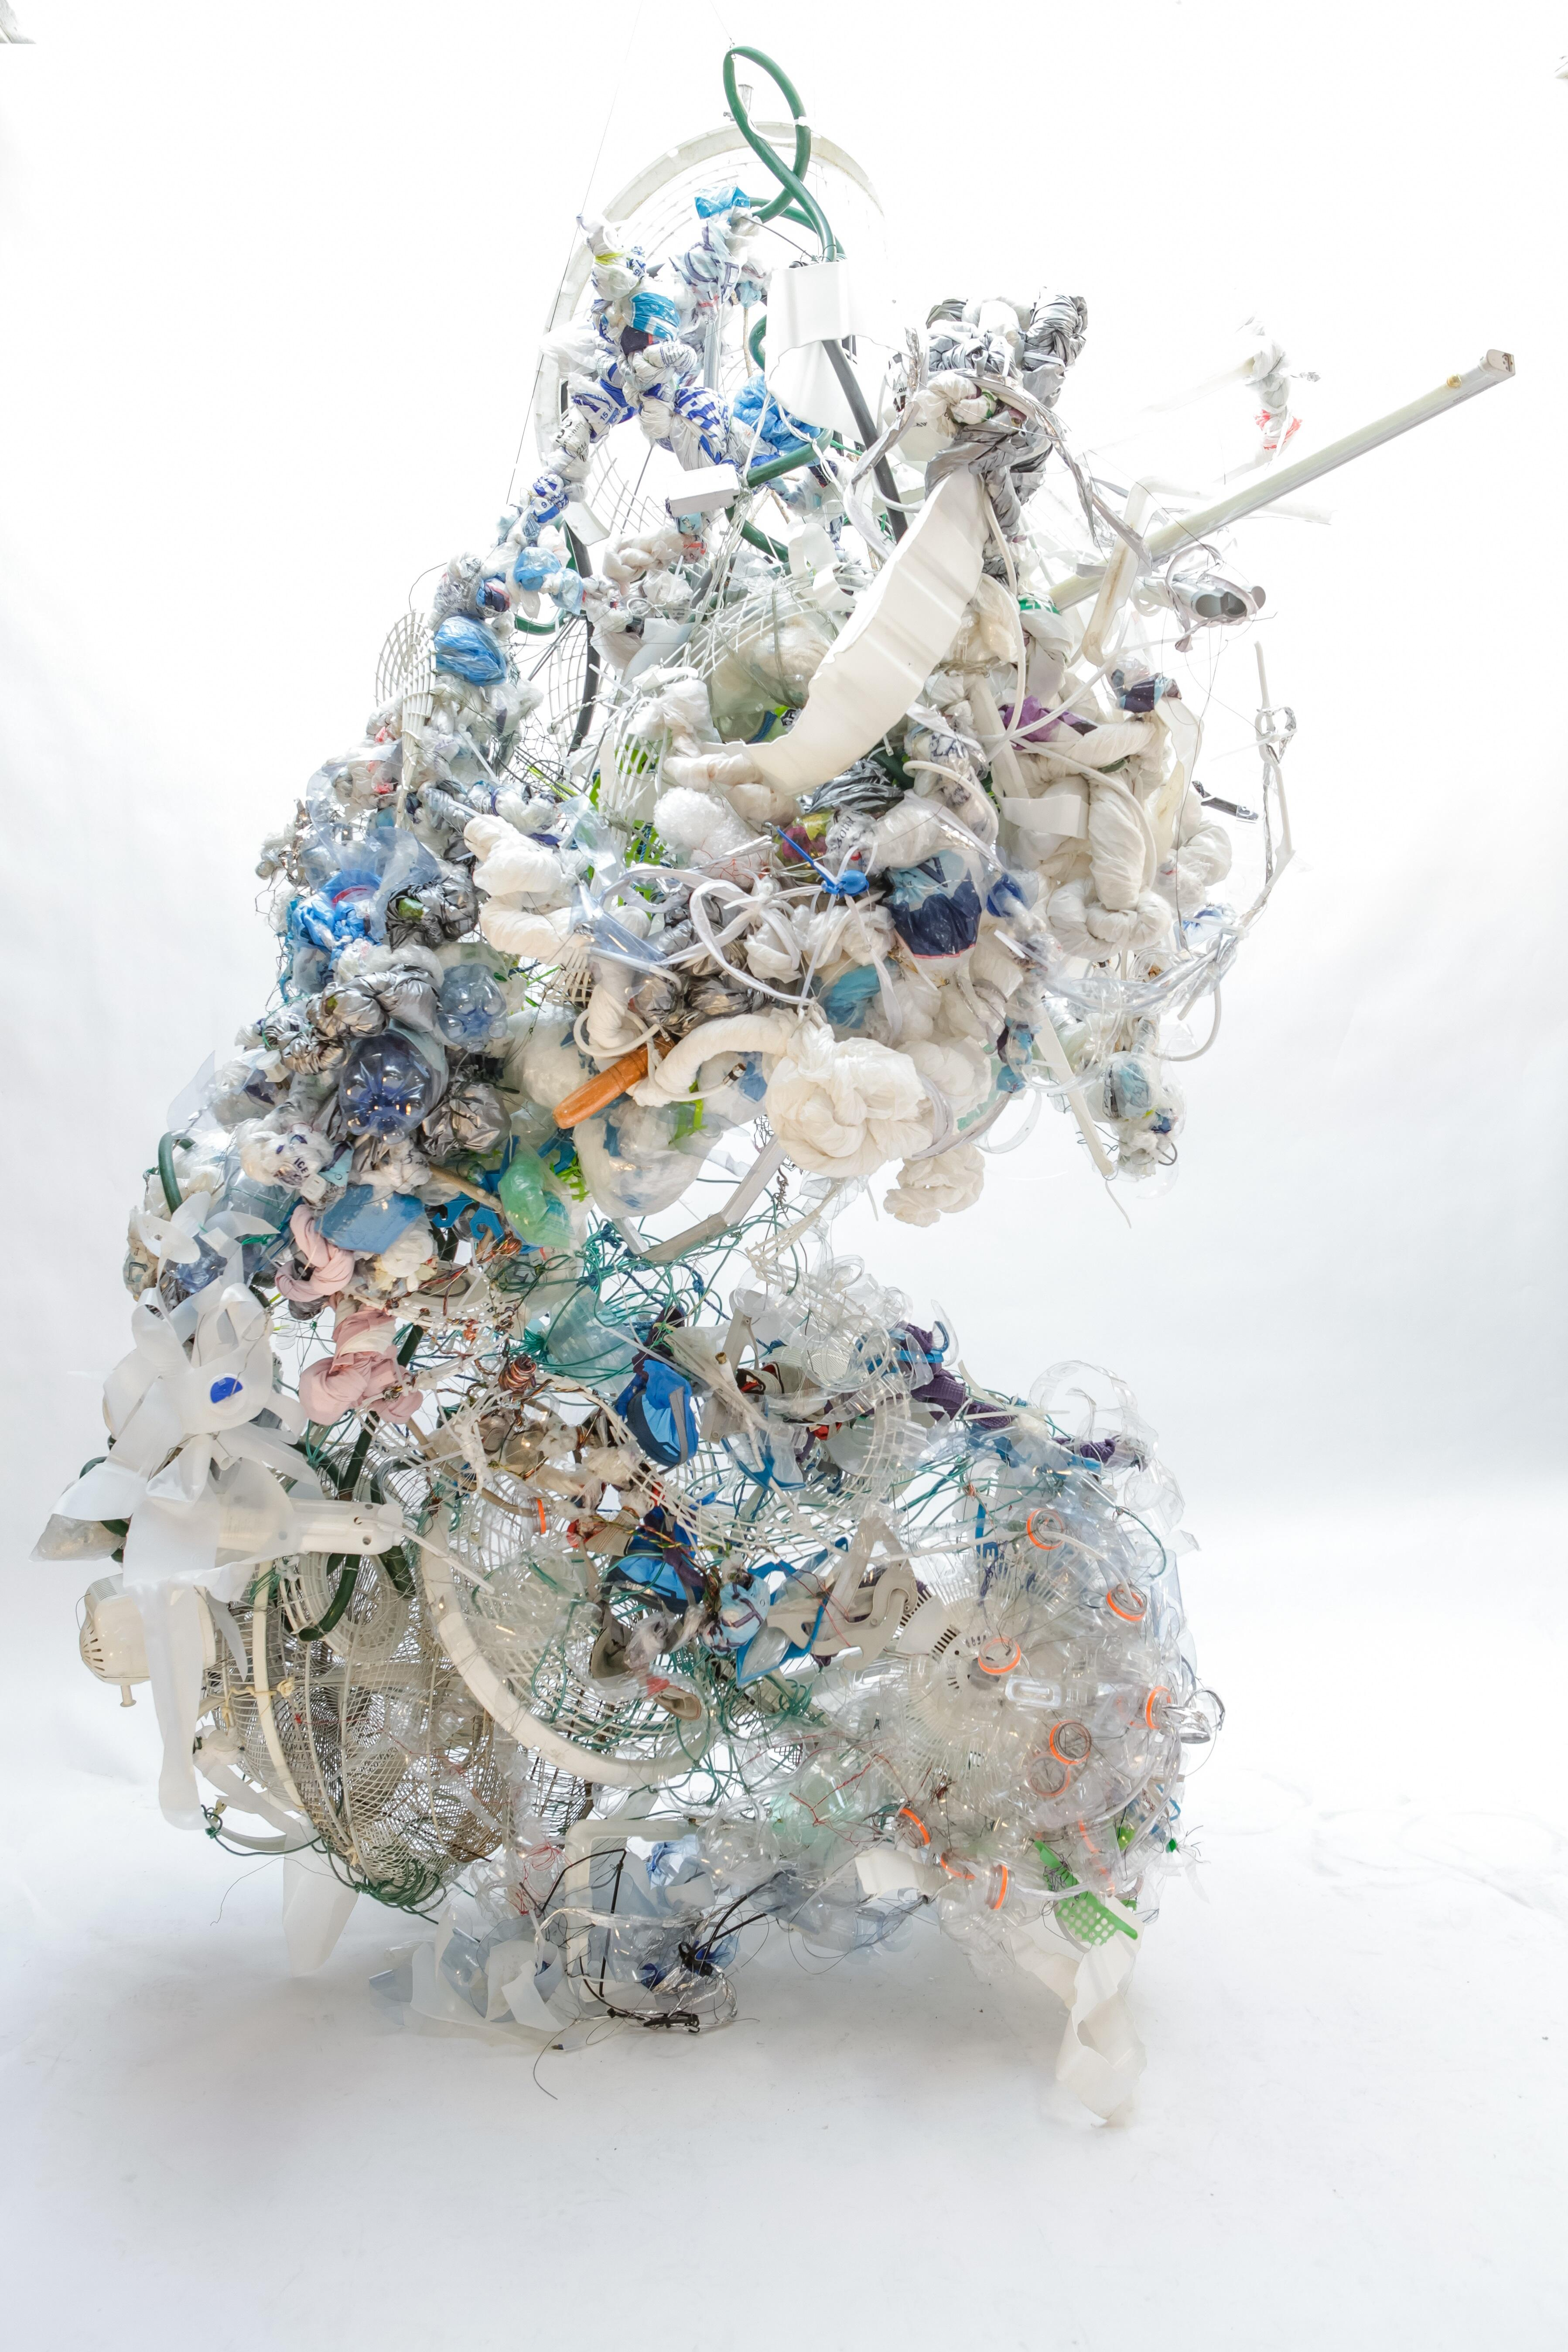 Chad Moore plastic sculpture